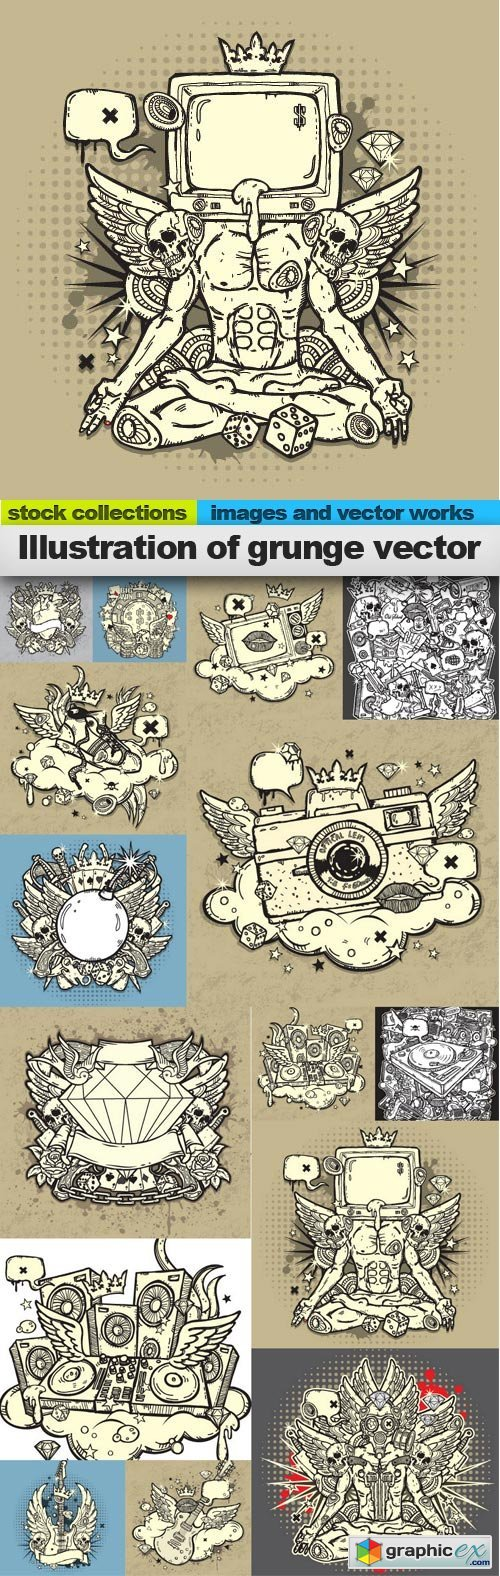 Illustration of grunge vector, 15 x EPS